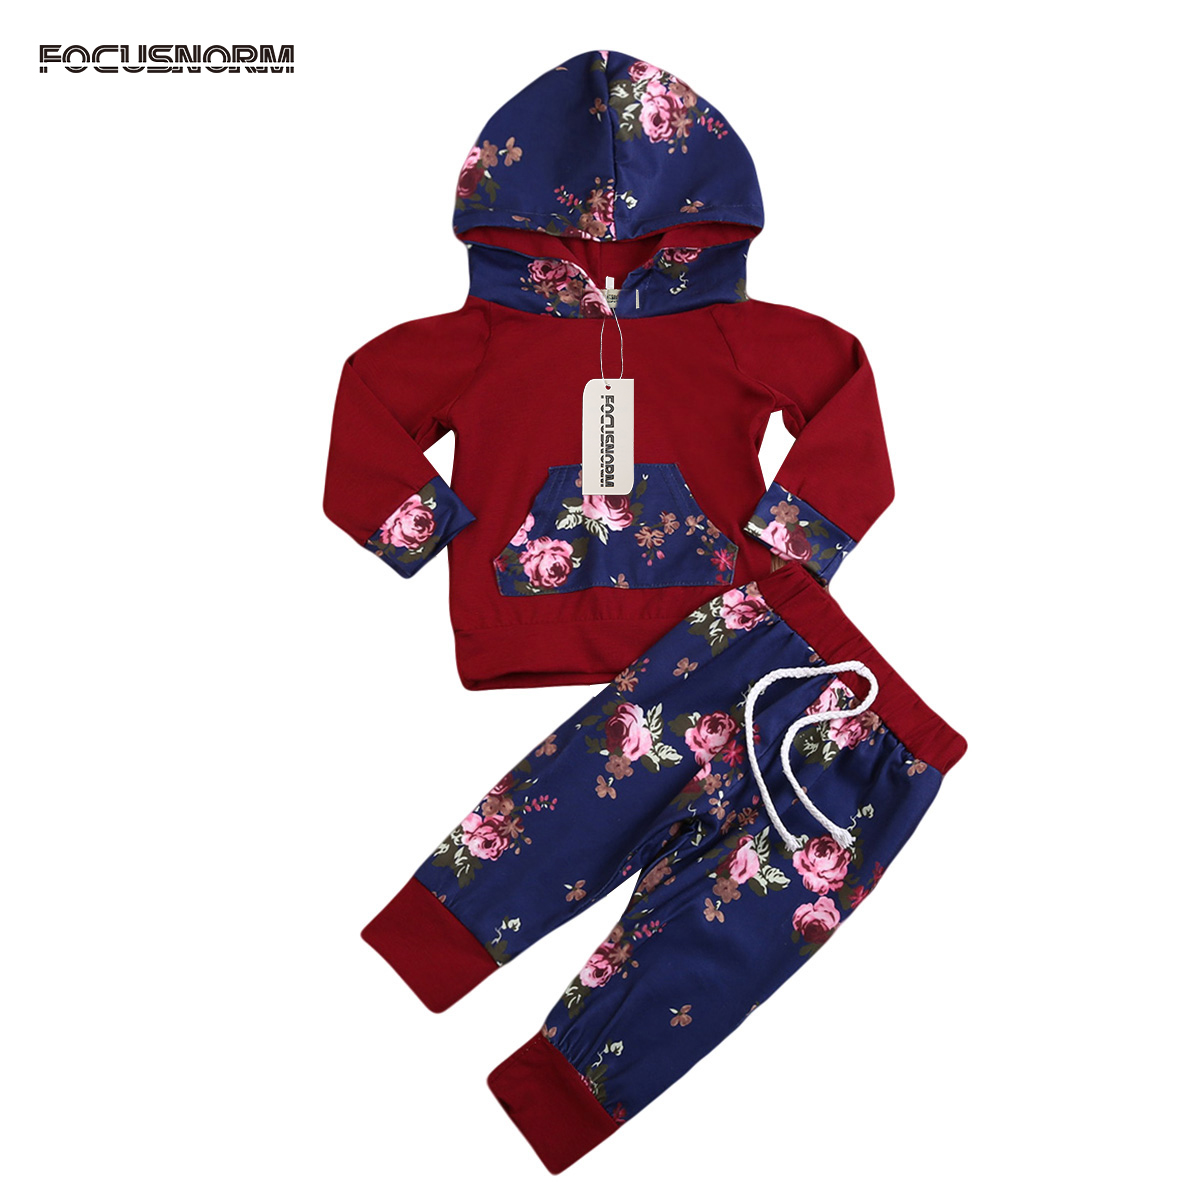 2017 Newborn Infant Baby Boy Girls Long Sleeve Hooded T-shirt+Pants Outfit Cute Floral Print Warm Clothes Sets